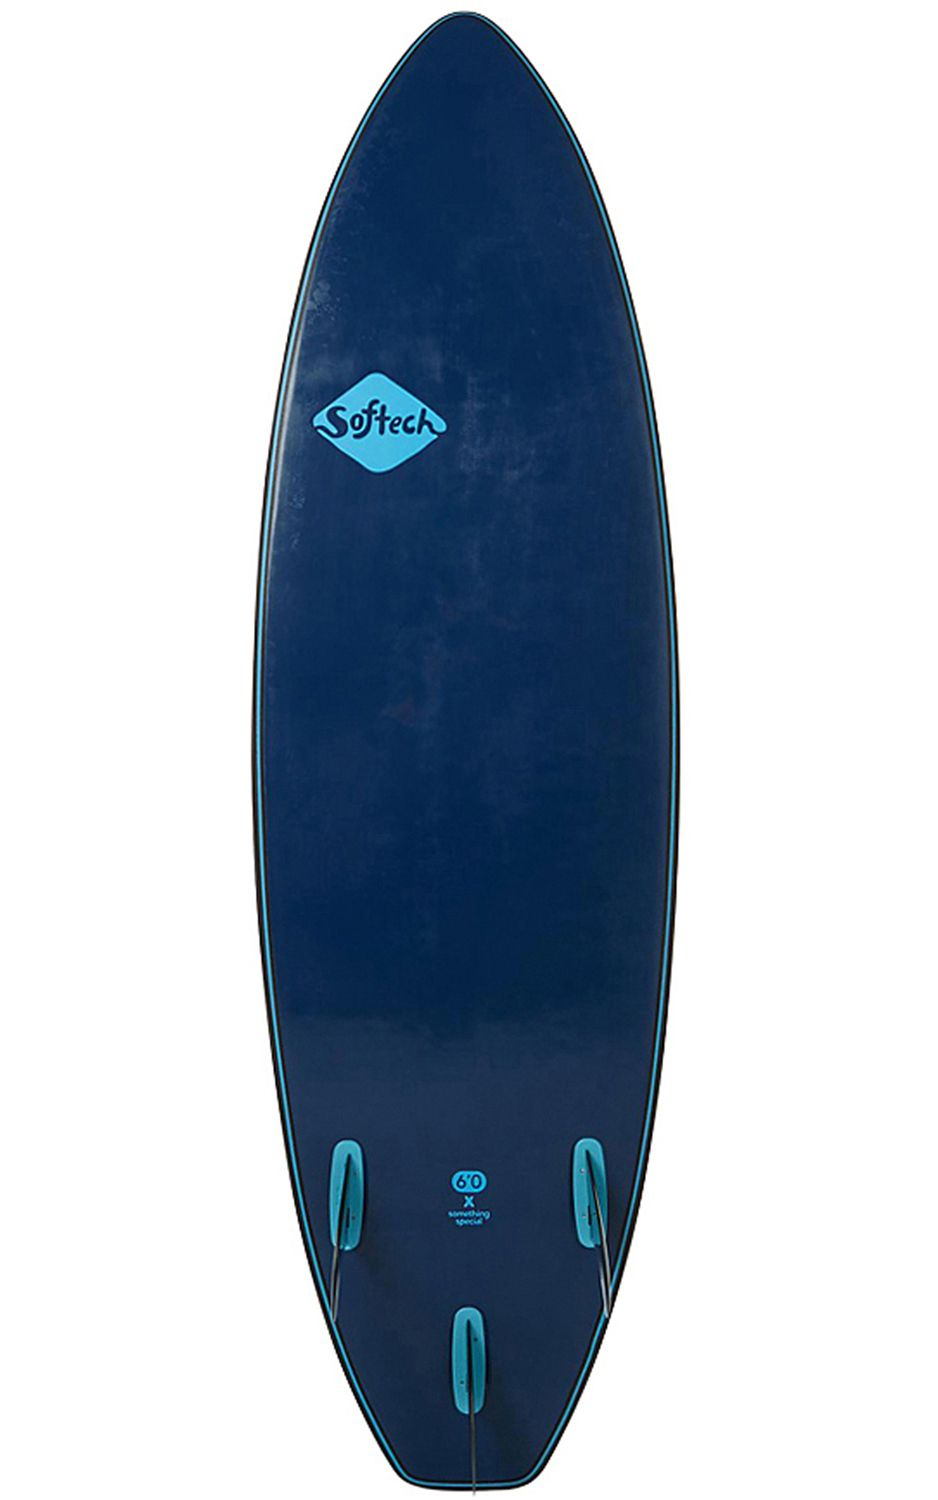 Prancha Surf Softech TC SIGNATURE 6ft0 SMOKED NAVY Squash Tail - Color Indefindo 6ft0